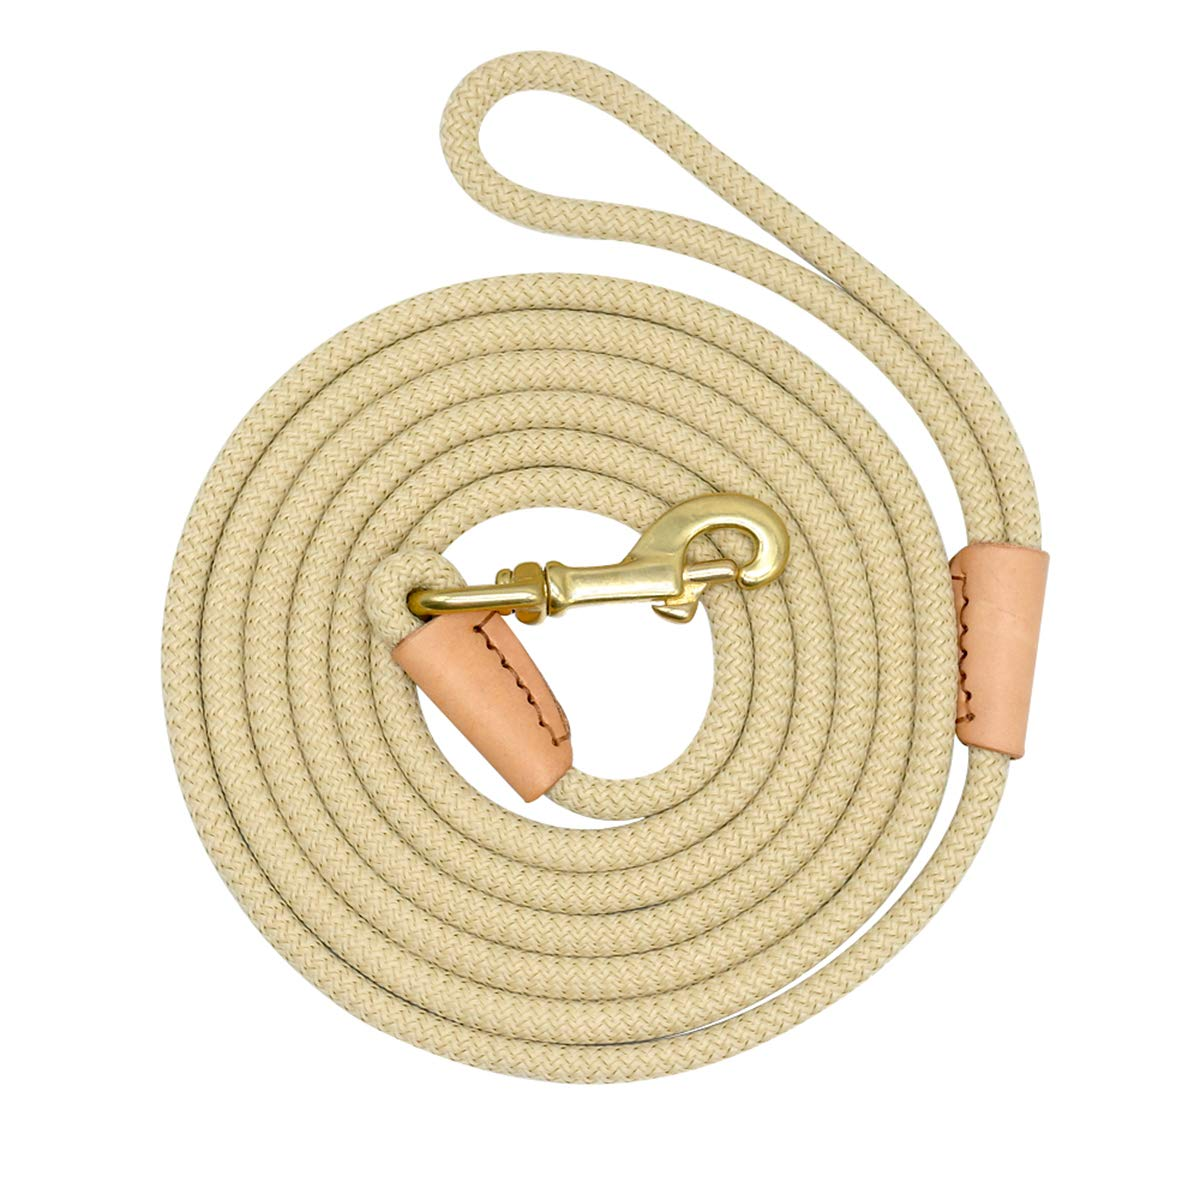 Beige 5m Beige 5m PETFDH Durable Dog Tracking Leash Nylon Long Leads Rope Pet Training Walking Leashes 3M 5M 10M 20M for Medium Large Dogs Non-Slip Beige 5m